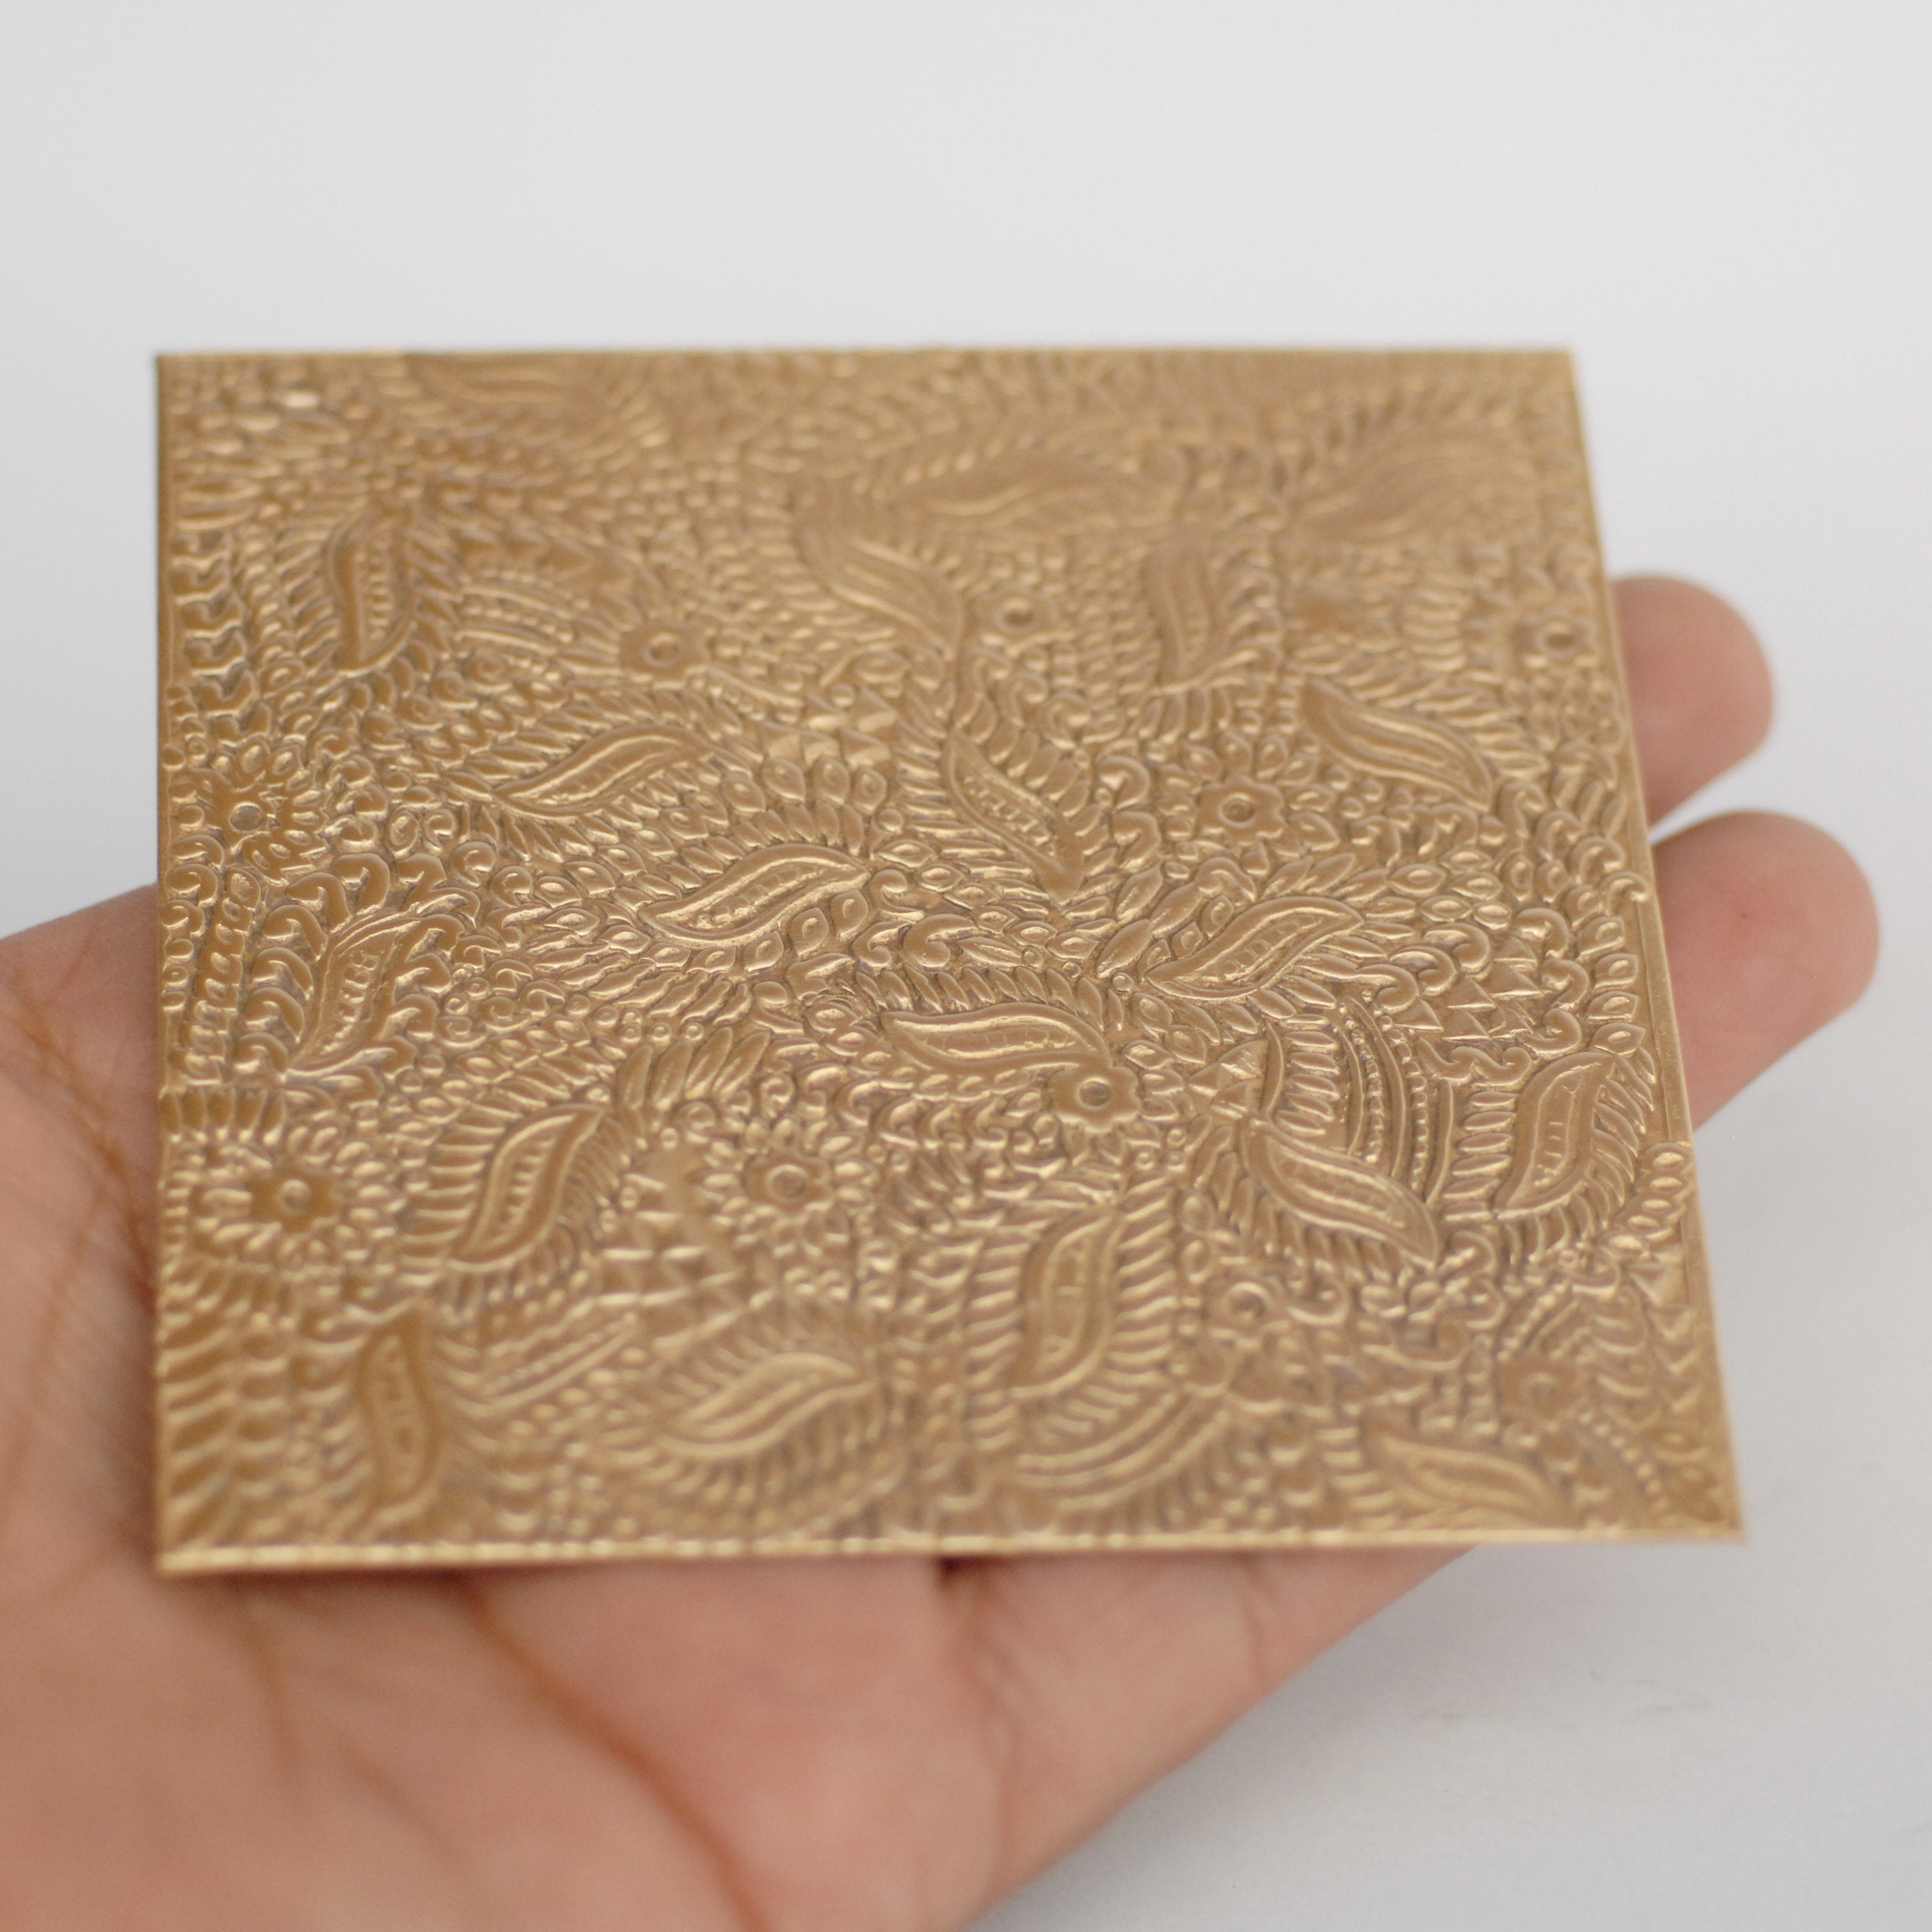 Buy Batik floral and leaves textured metal sheet - 3 inch x 3 inch online